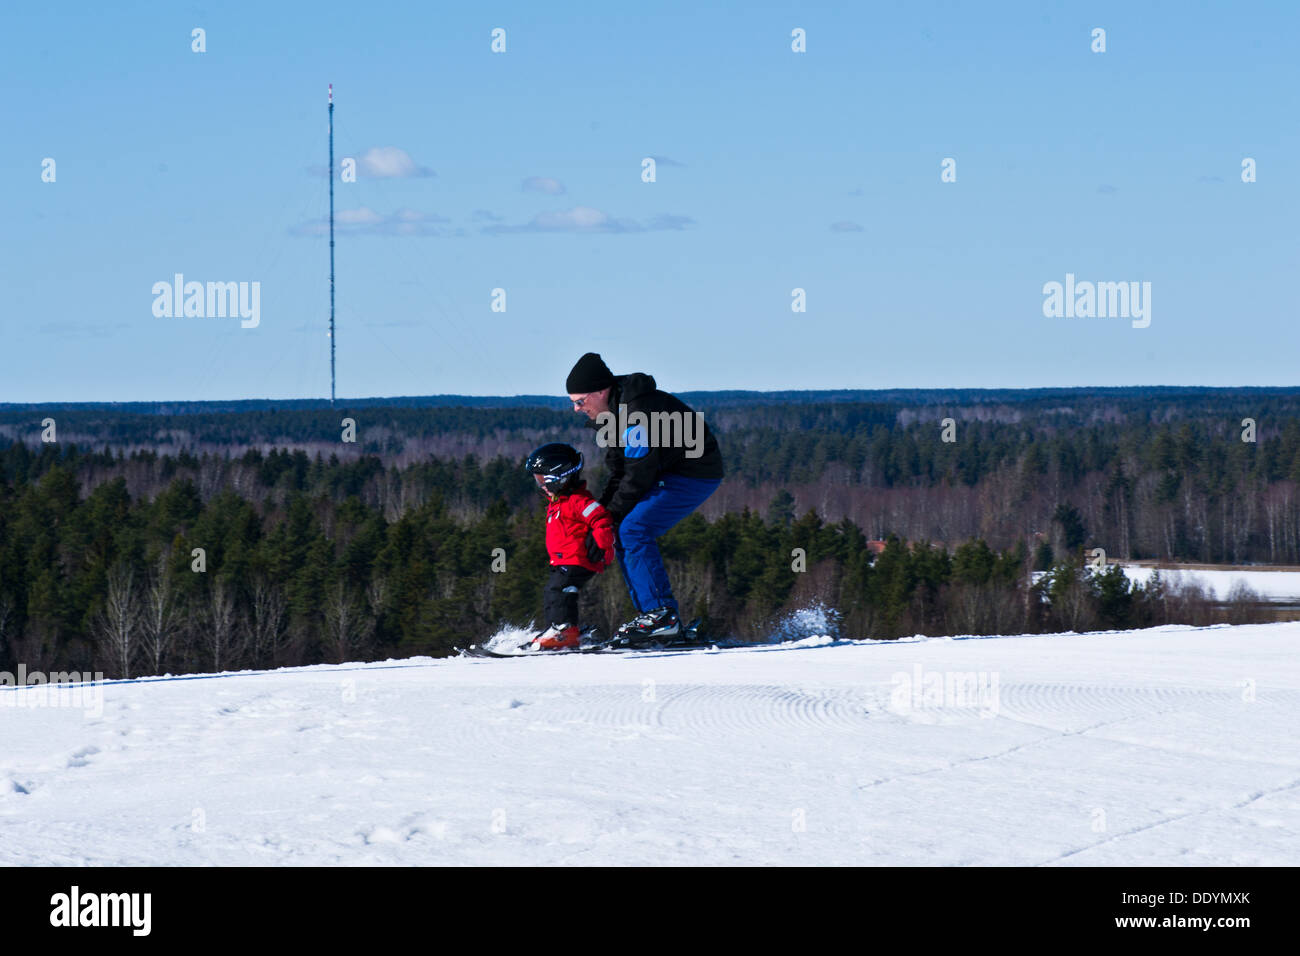 father teaches son / daughter to go downhill - Stock Image